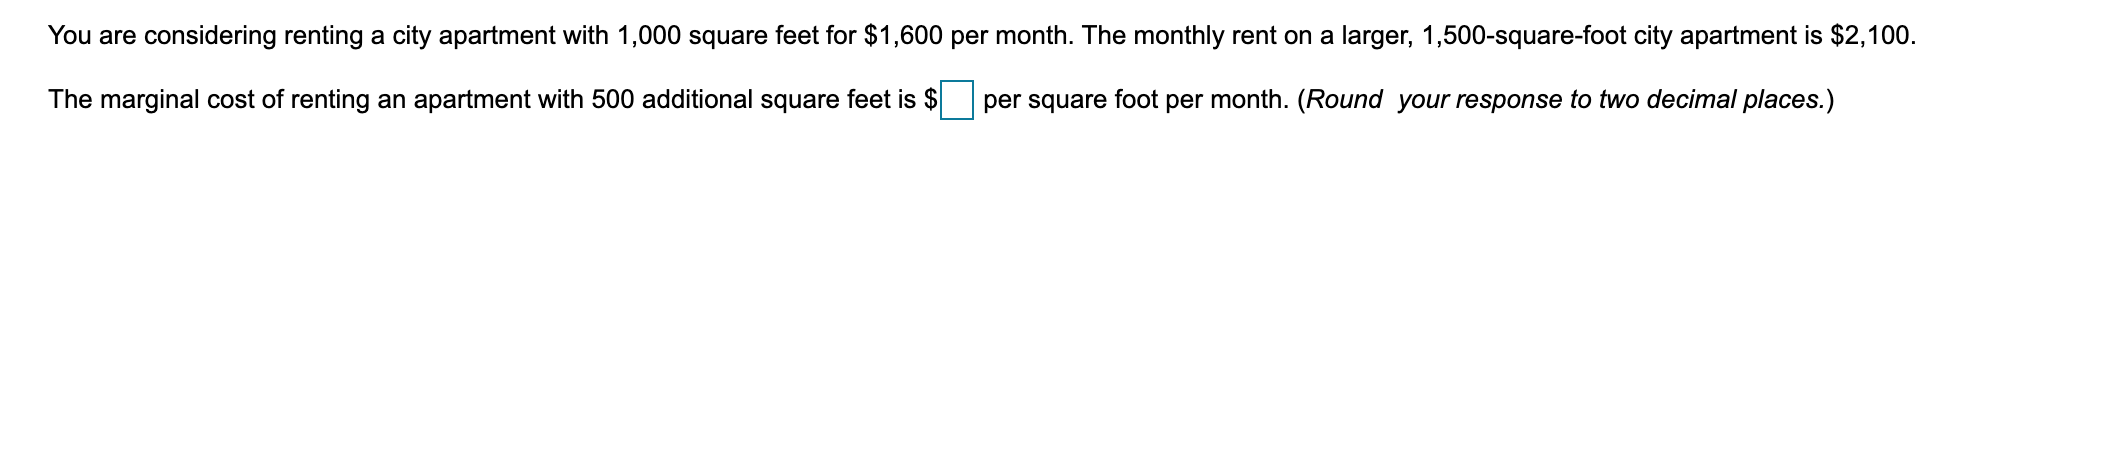 You are considering renting a city apartment with 1,000 square feet for $1,600 per month. The monthly rent on a larger, 1,500